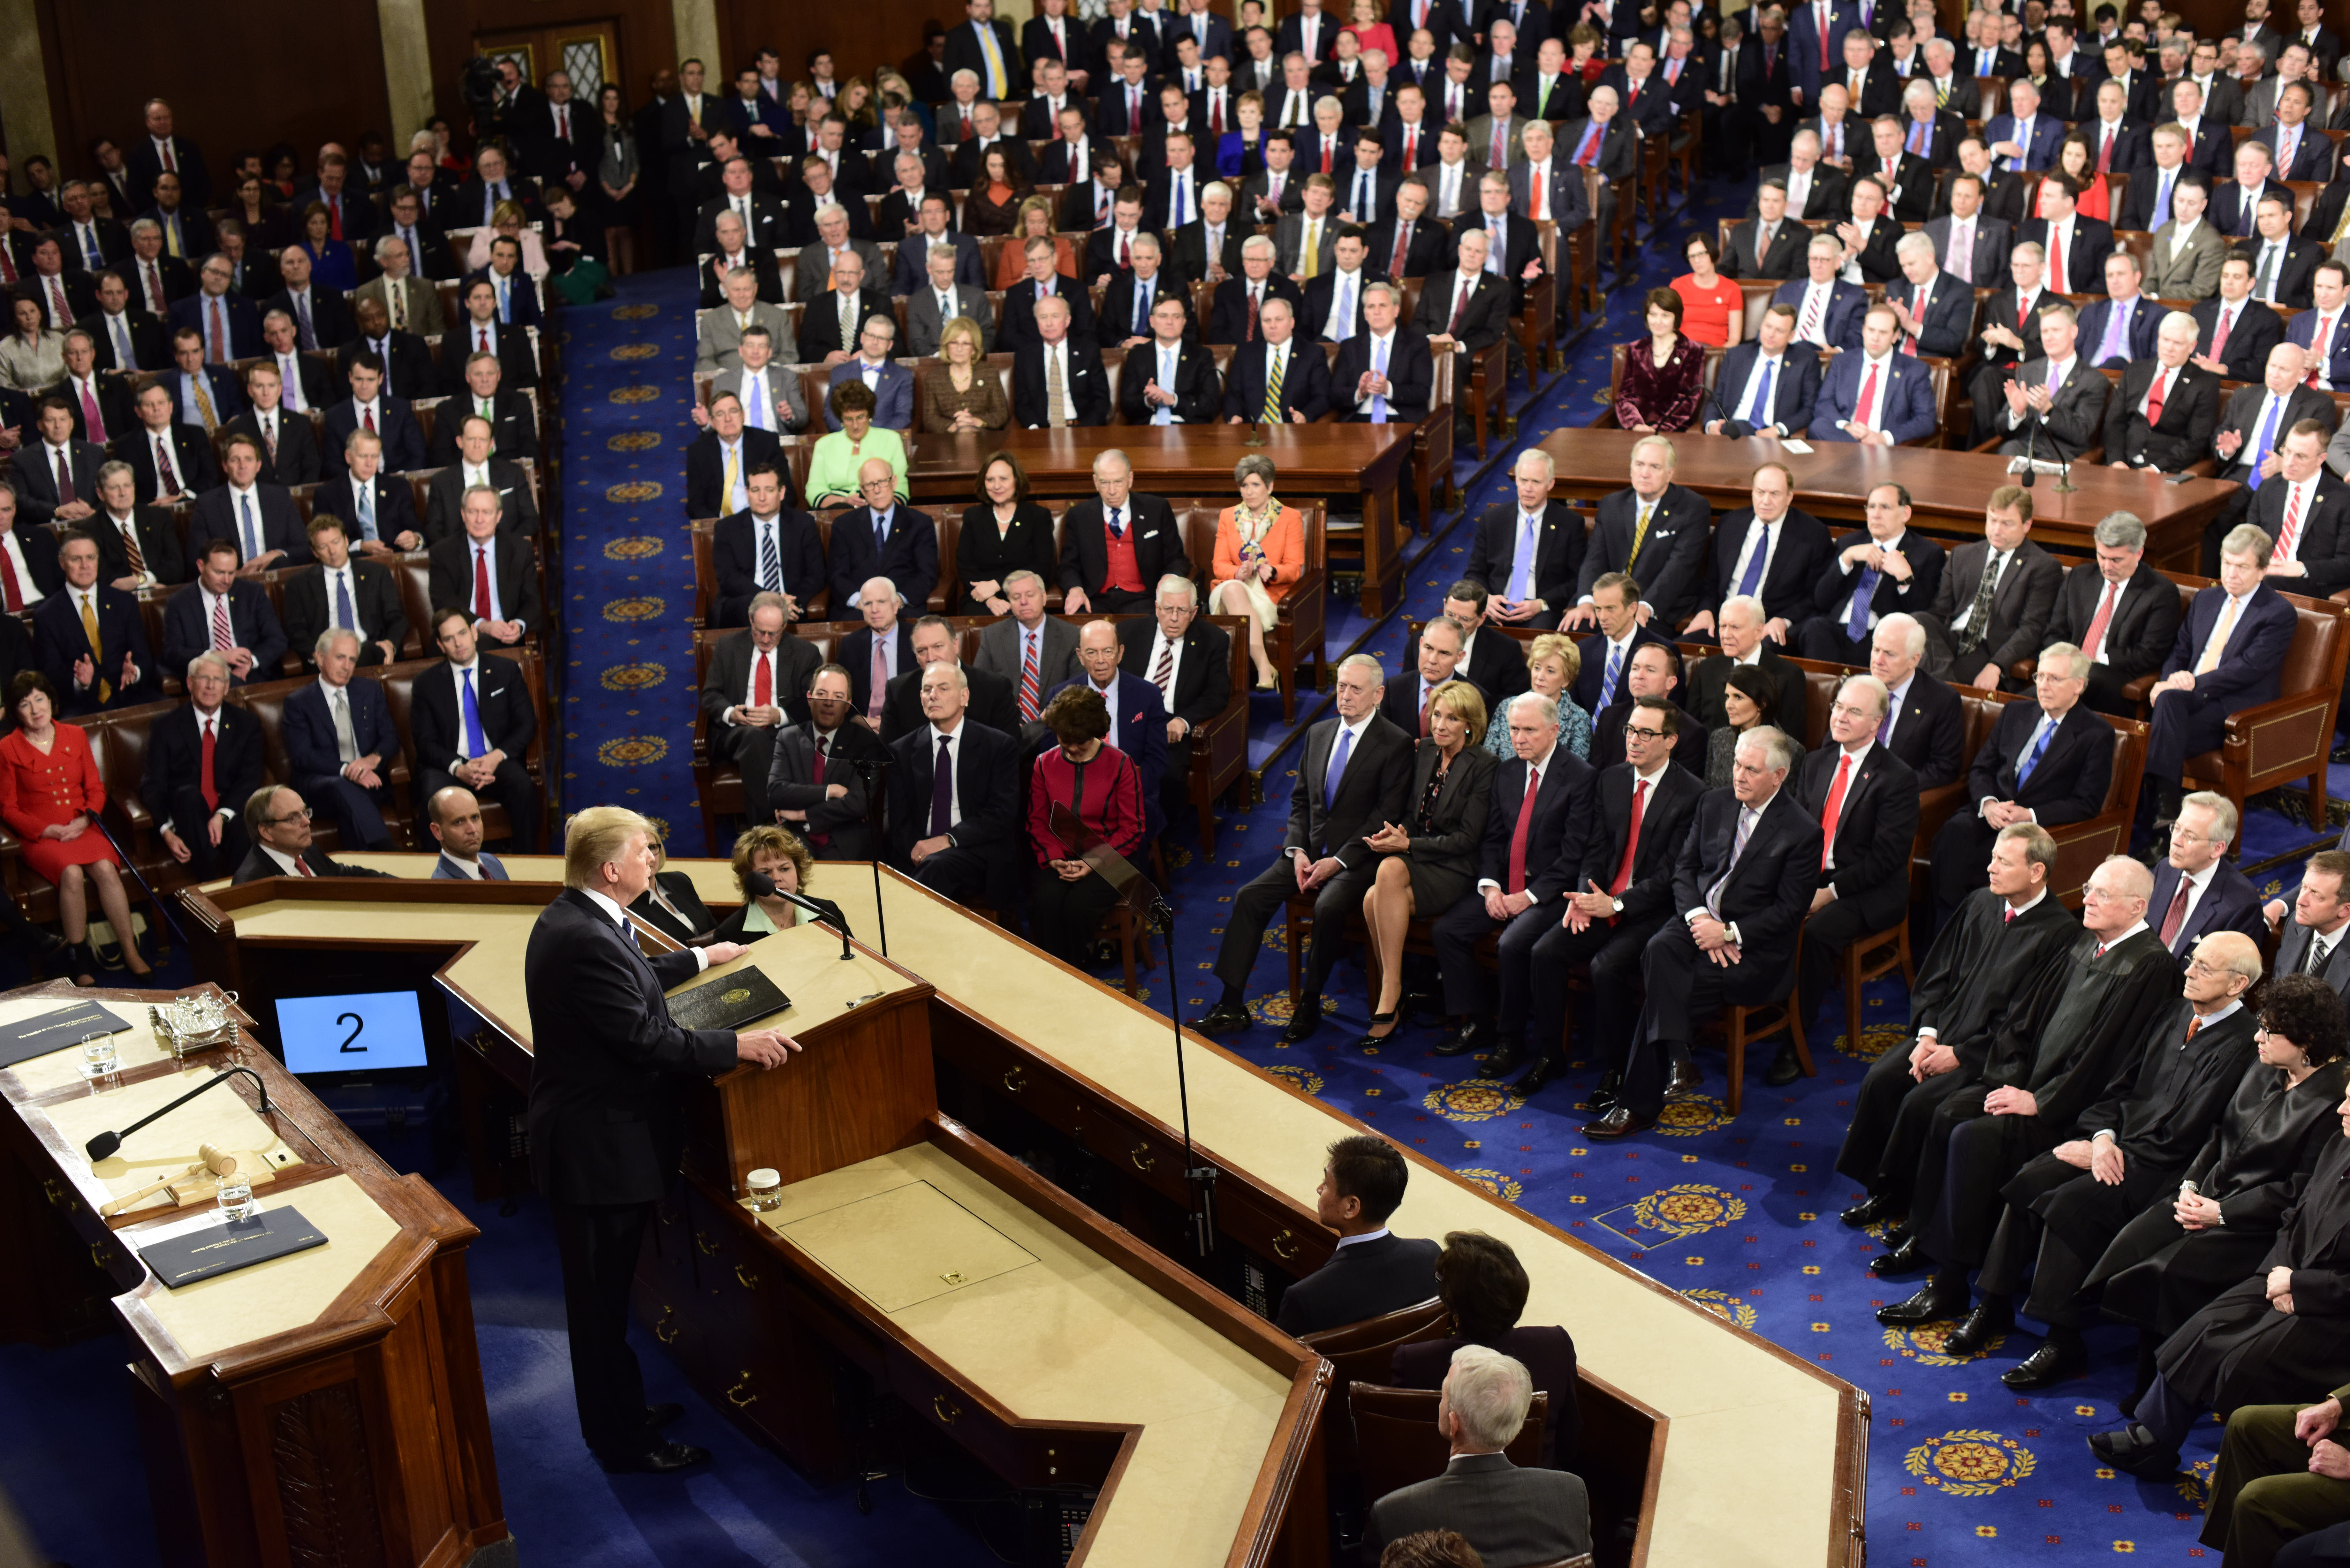 President Trump's address to a joint session of Congress appeared to show a more measured president possibly willing to compromise on some core campaign pledges.(Washington Post photo by Melina Mara)